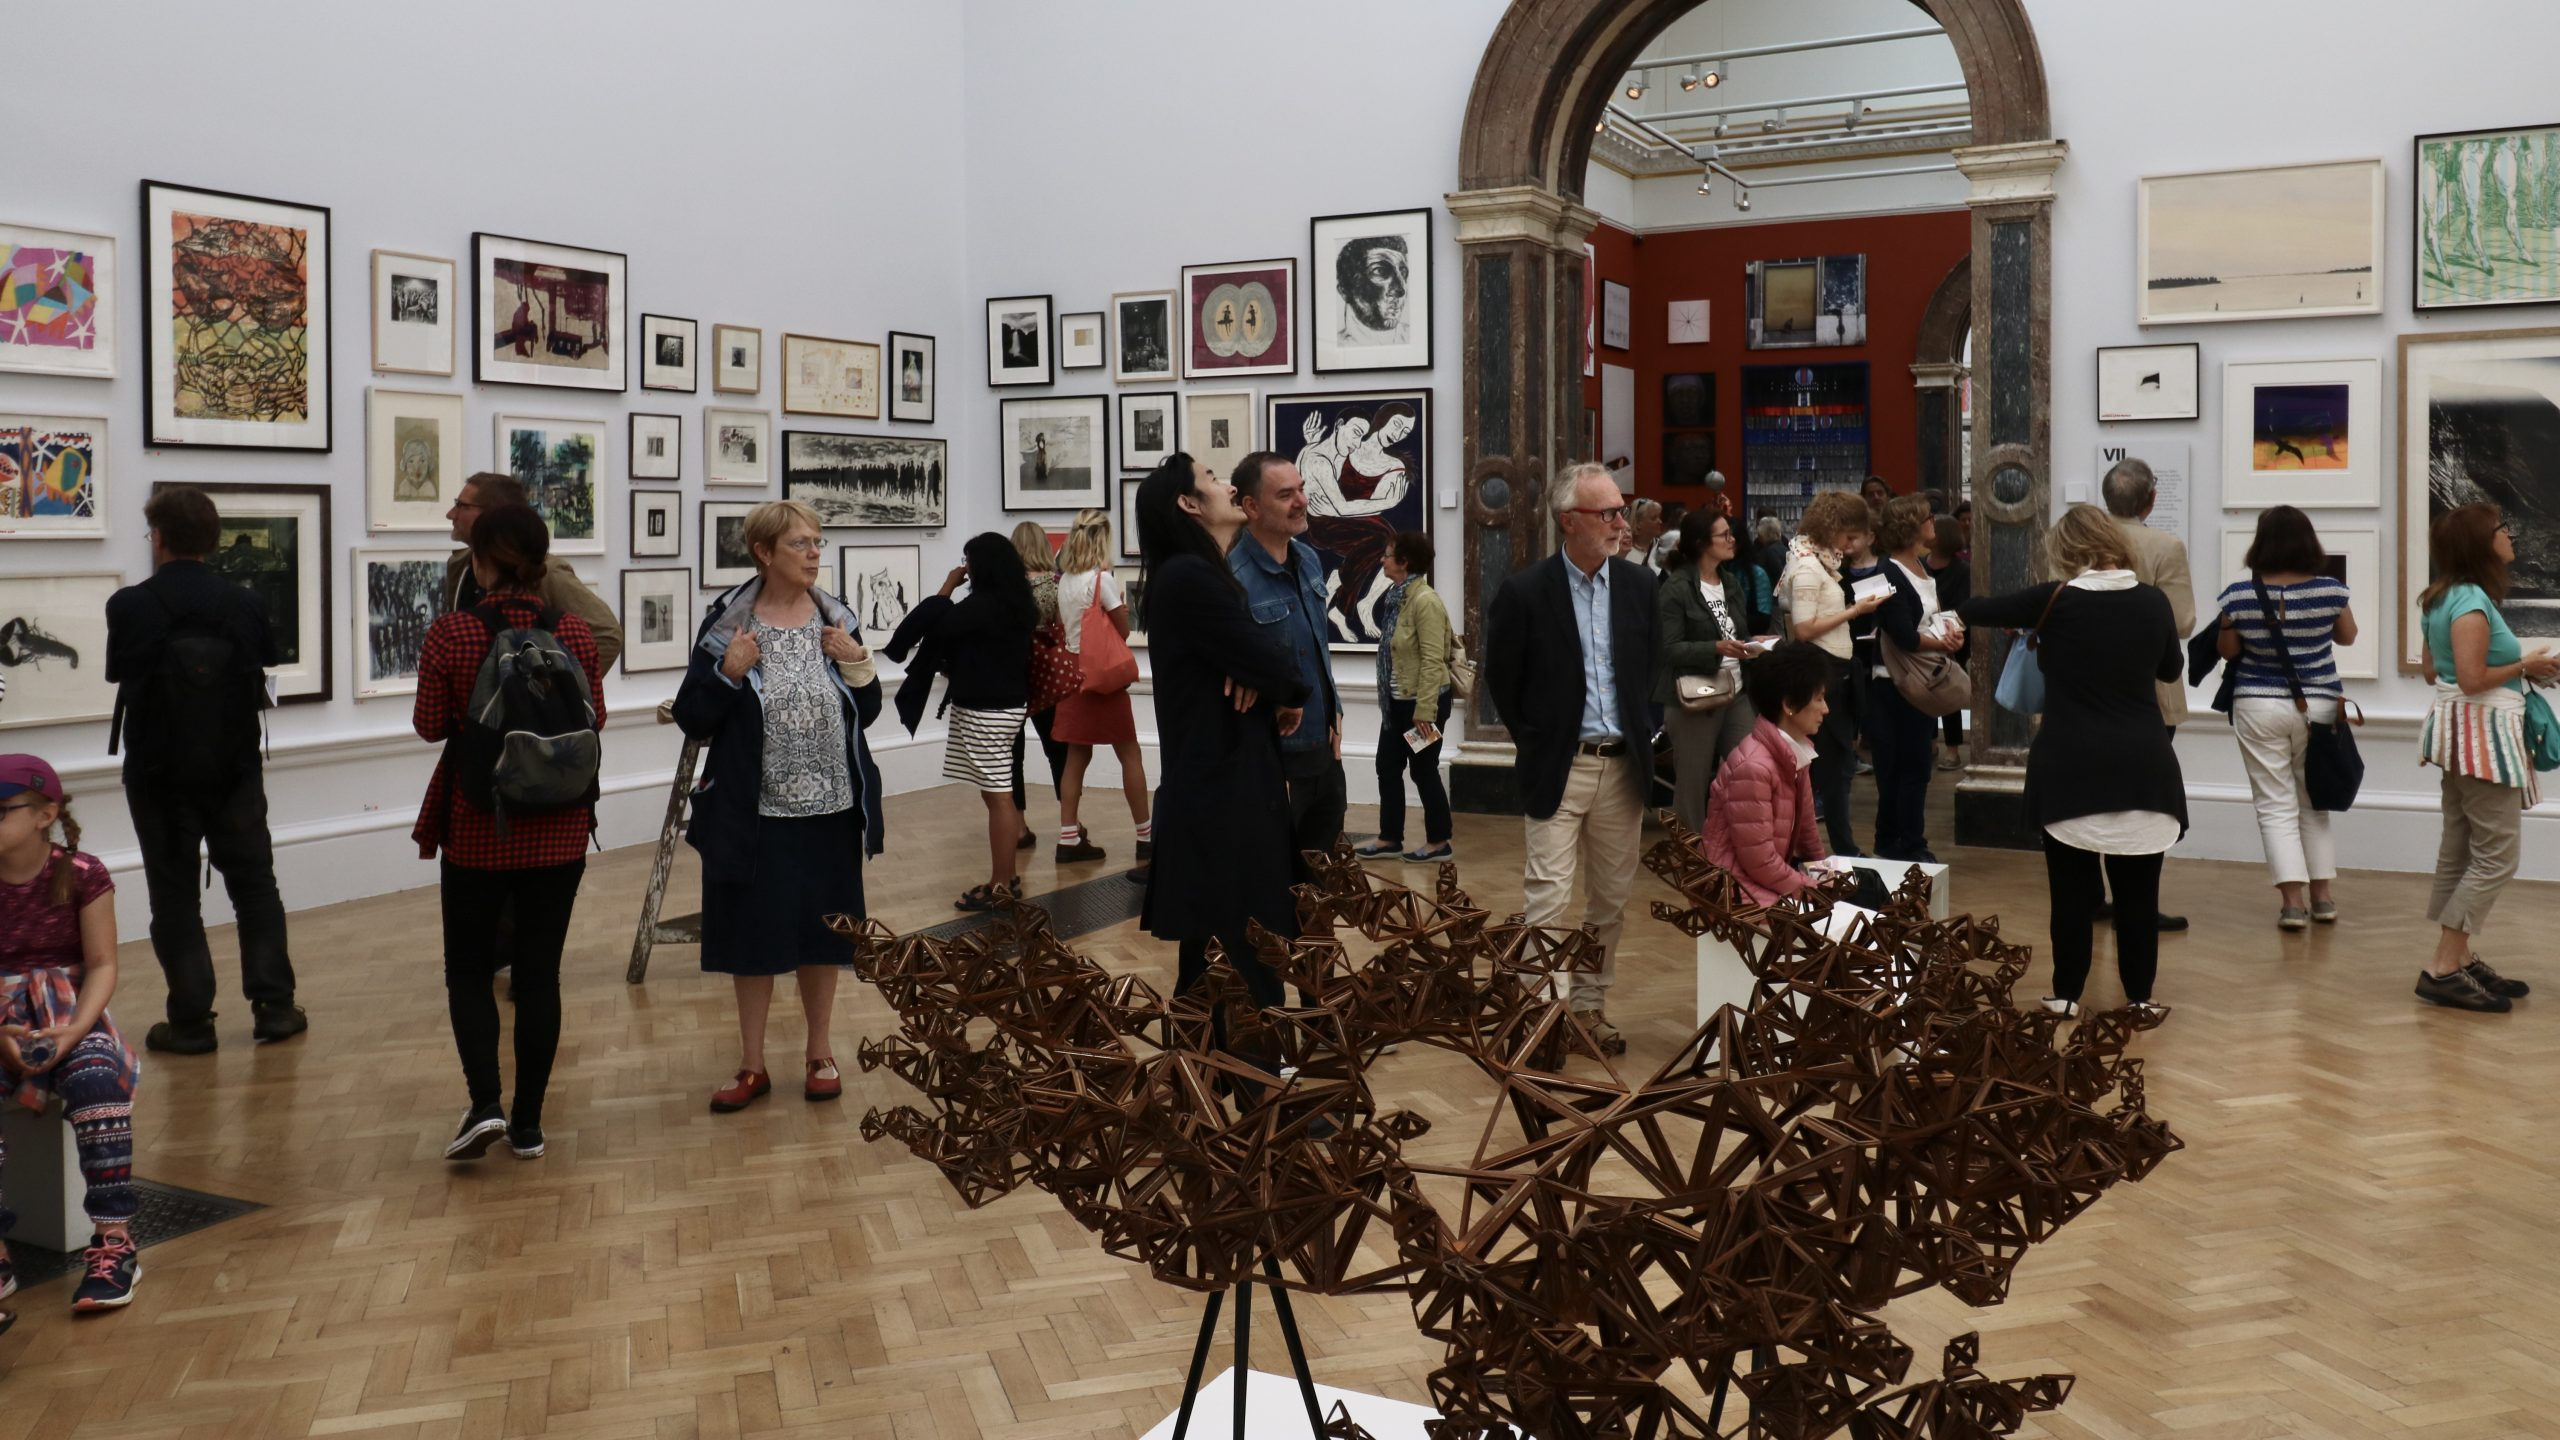 Summer Exhibition in the Royal Academy of Arts, London